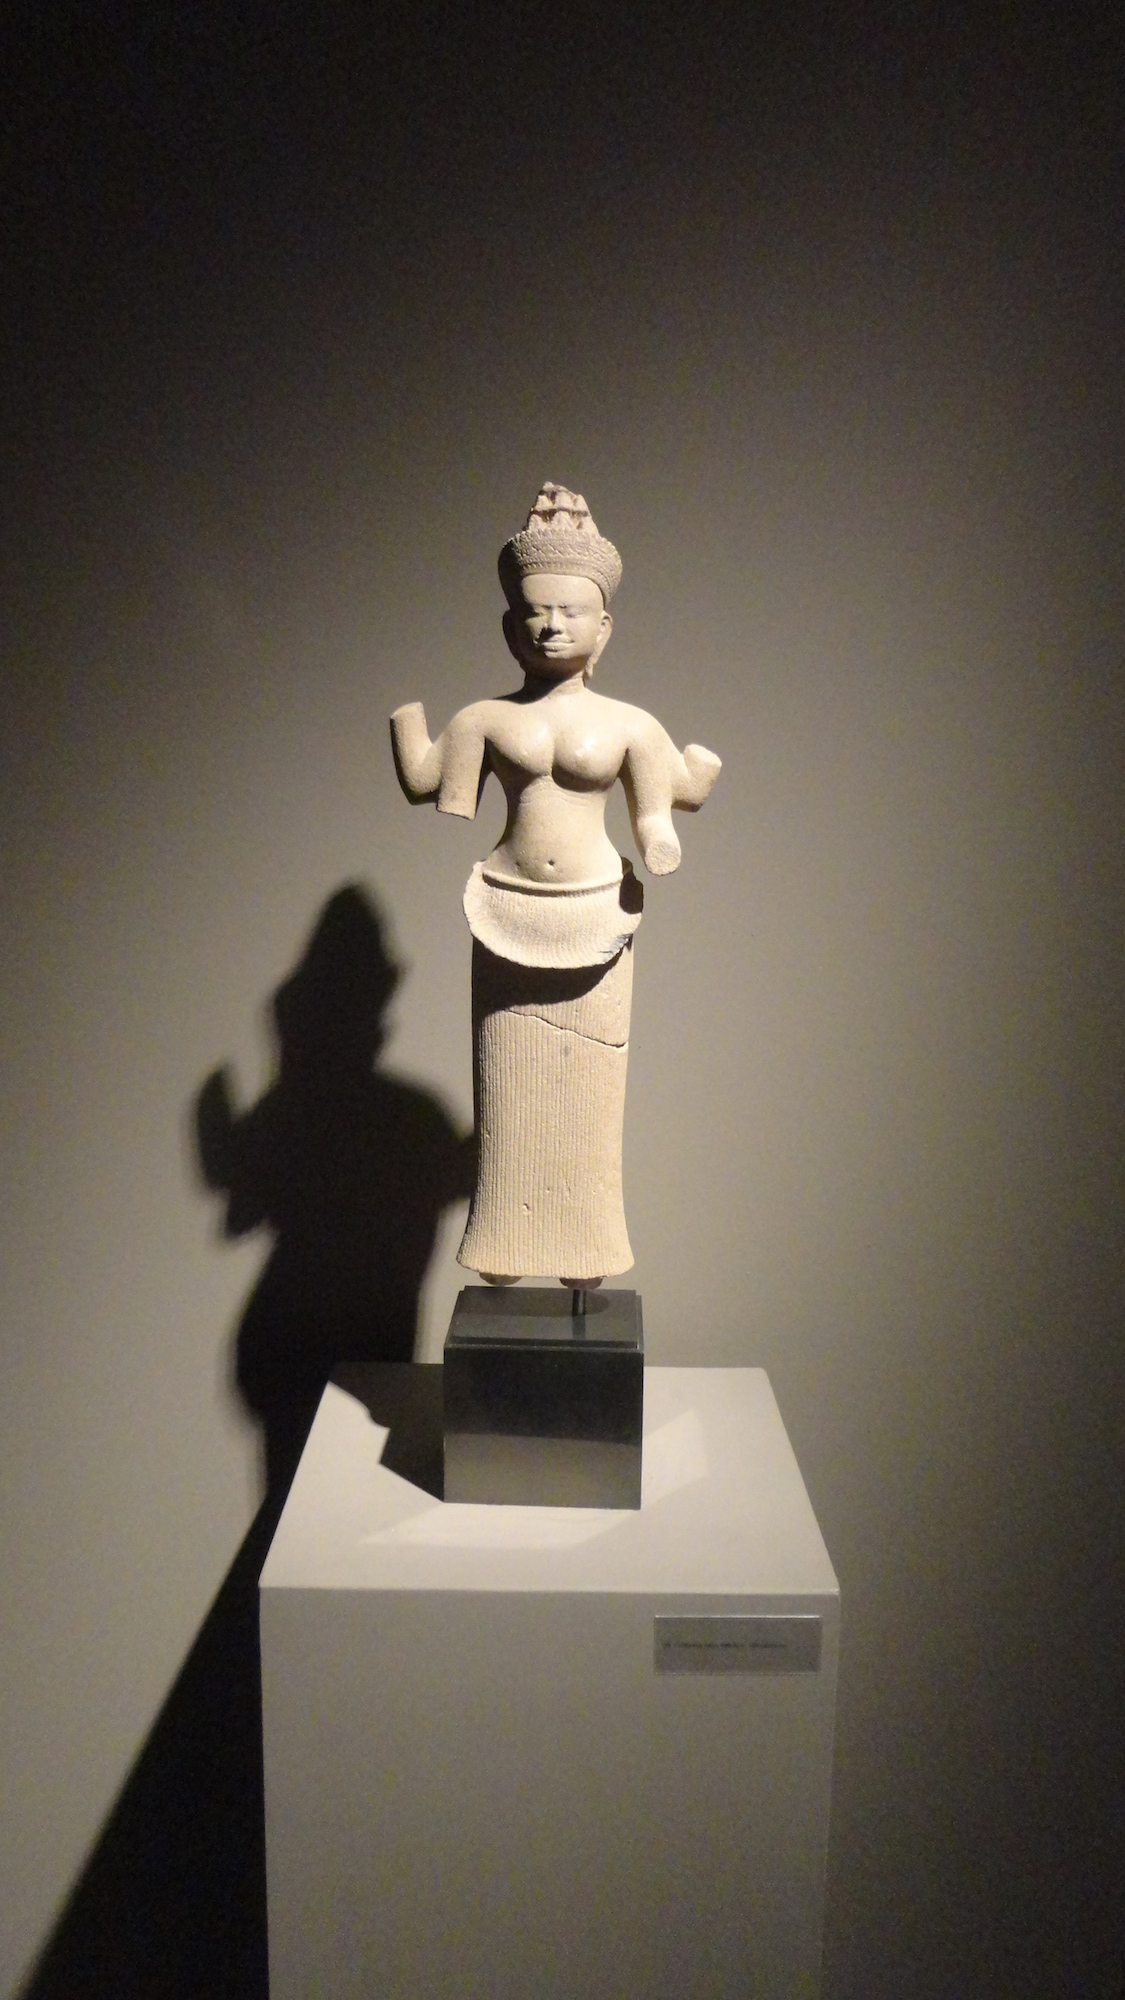 This 10th-century Cambodian statuette of a devi or goddess, from Pre-Rup in Angkor, was one of numerous antiquities on sale at the European Fine Art Fair in Maastricht in March. Image Auction Central News.